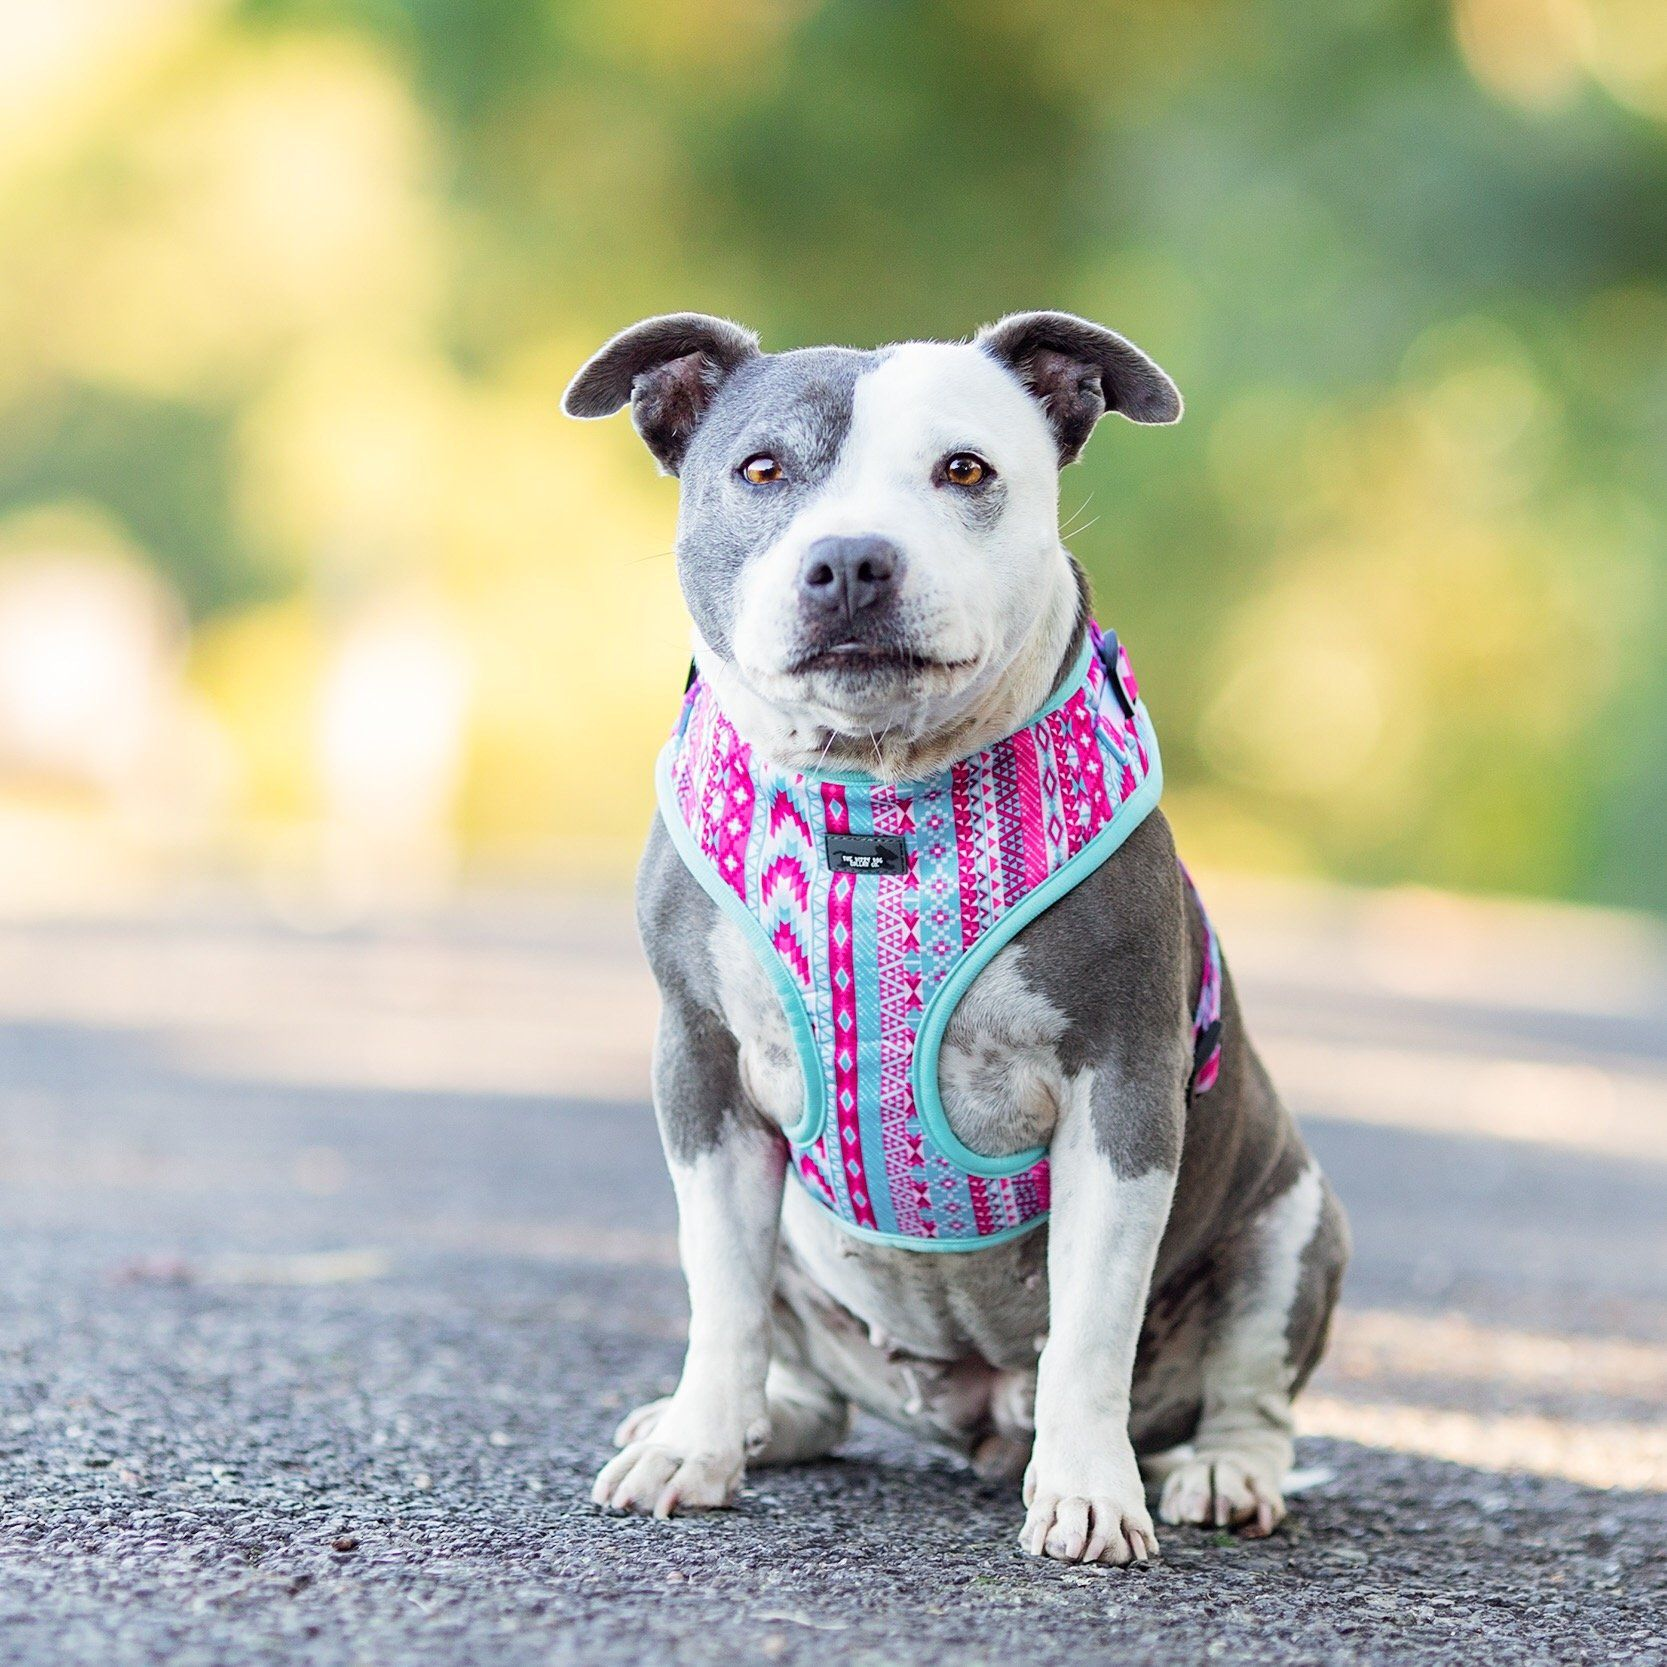 Pastel Aztec - Adjustable Dog Harness-Harness-Dizzy Dog Collars-Small-Dizzy Dog Collars